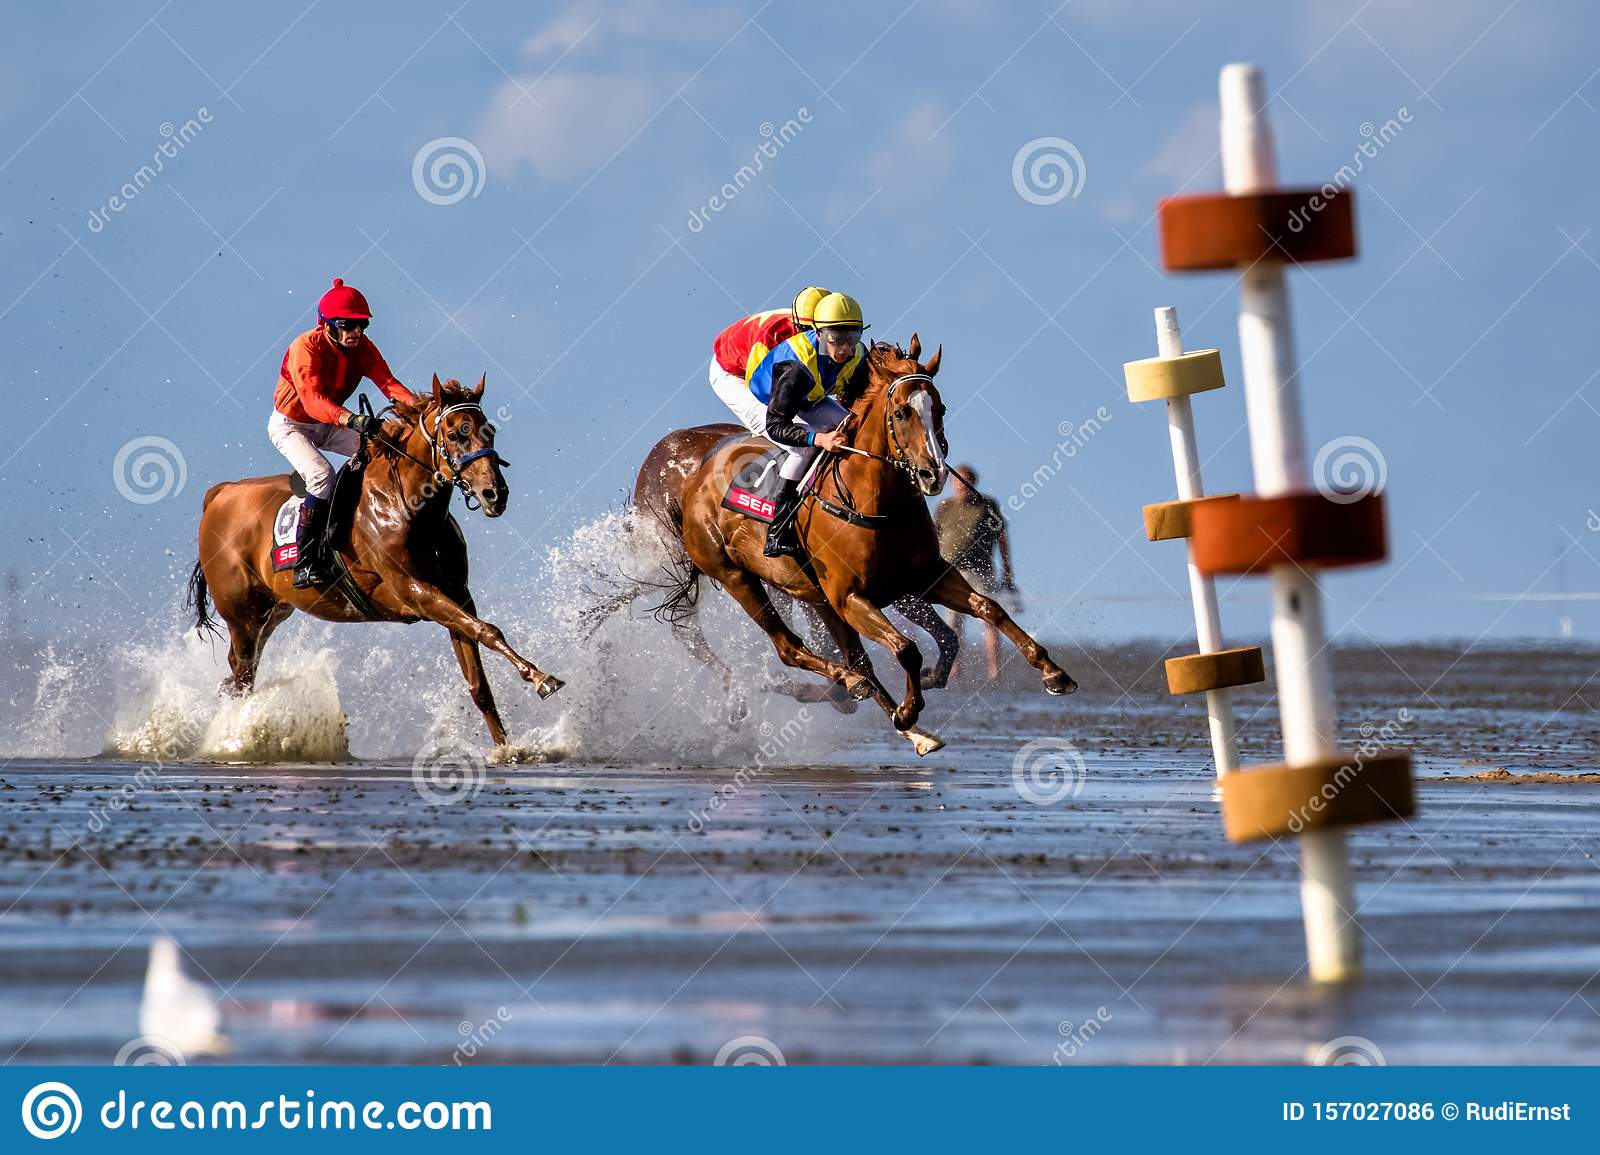 Cuxhaven, Germany - July 22, 2018: equestrian at the horse race in the mud flat at Duhner Wattrennen